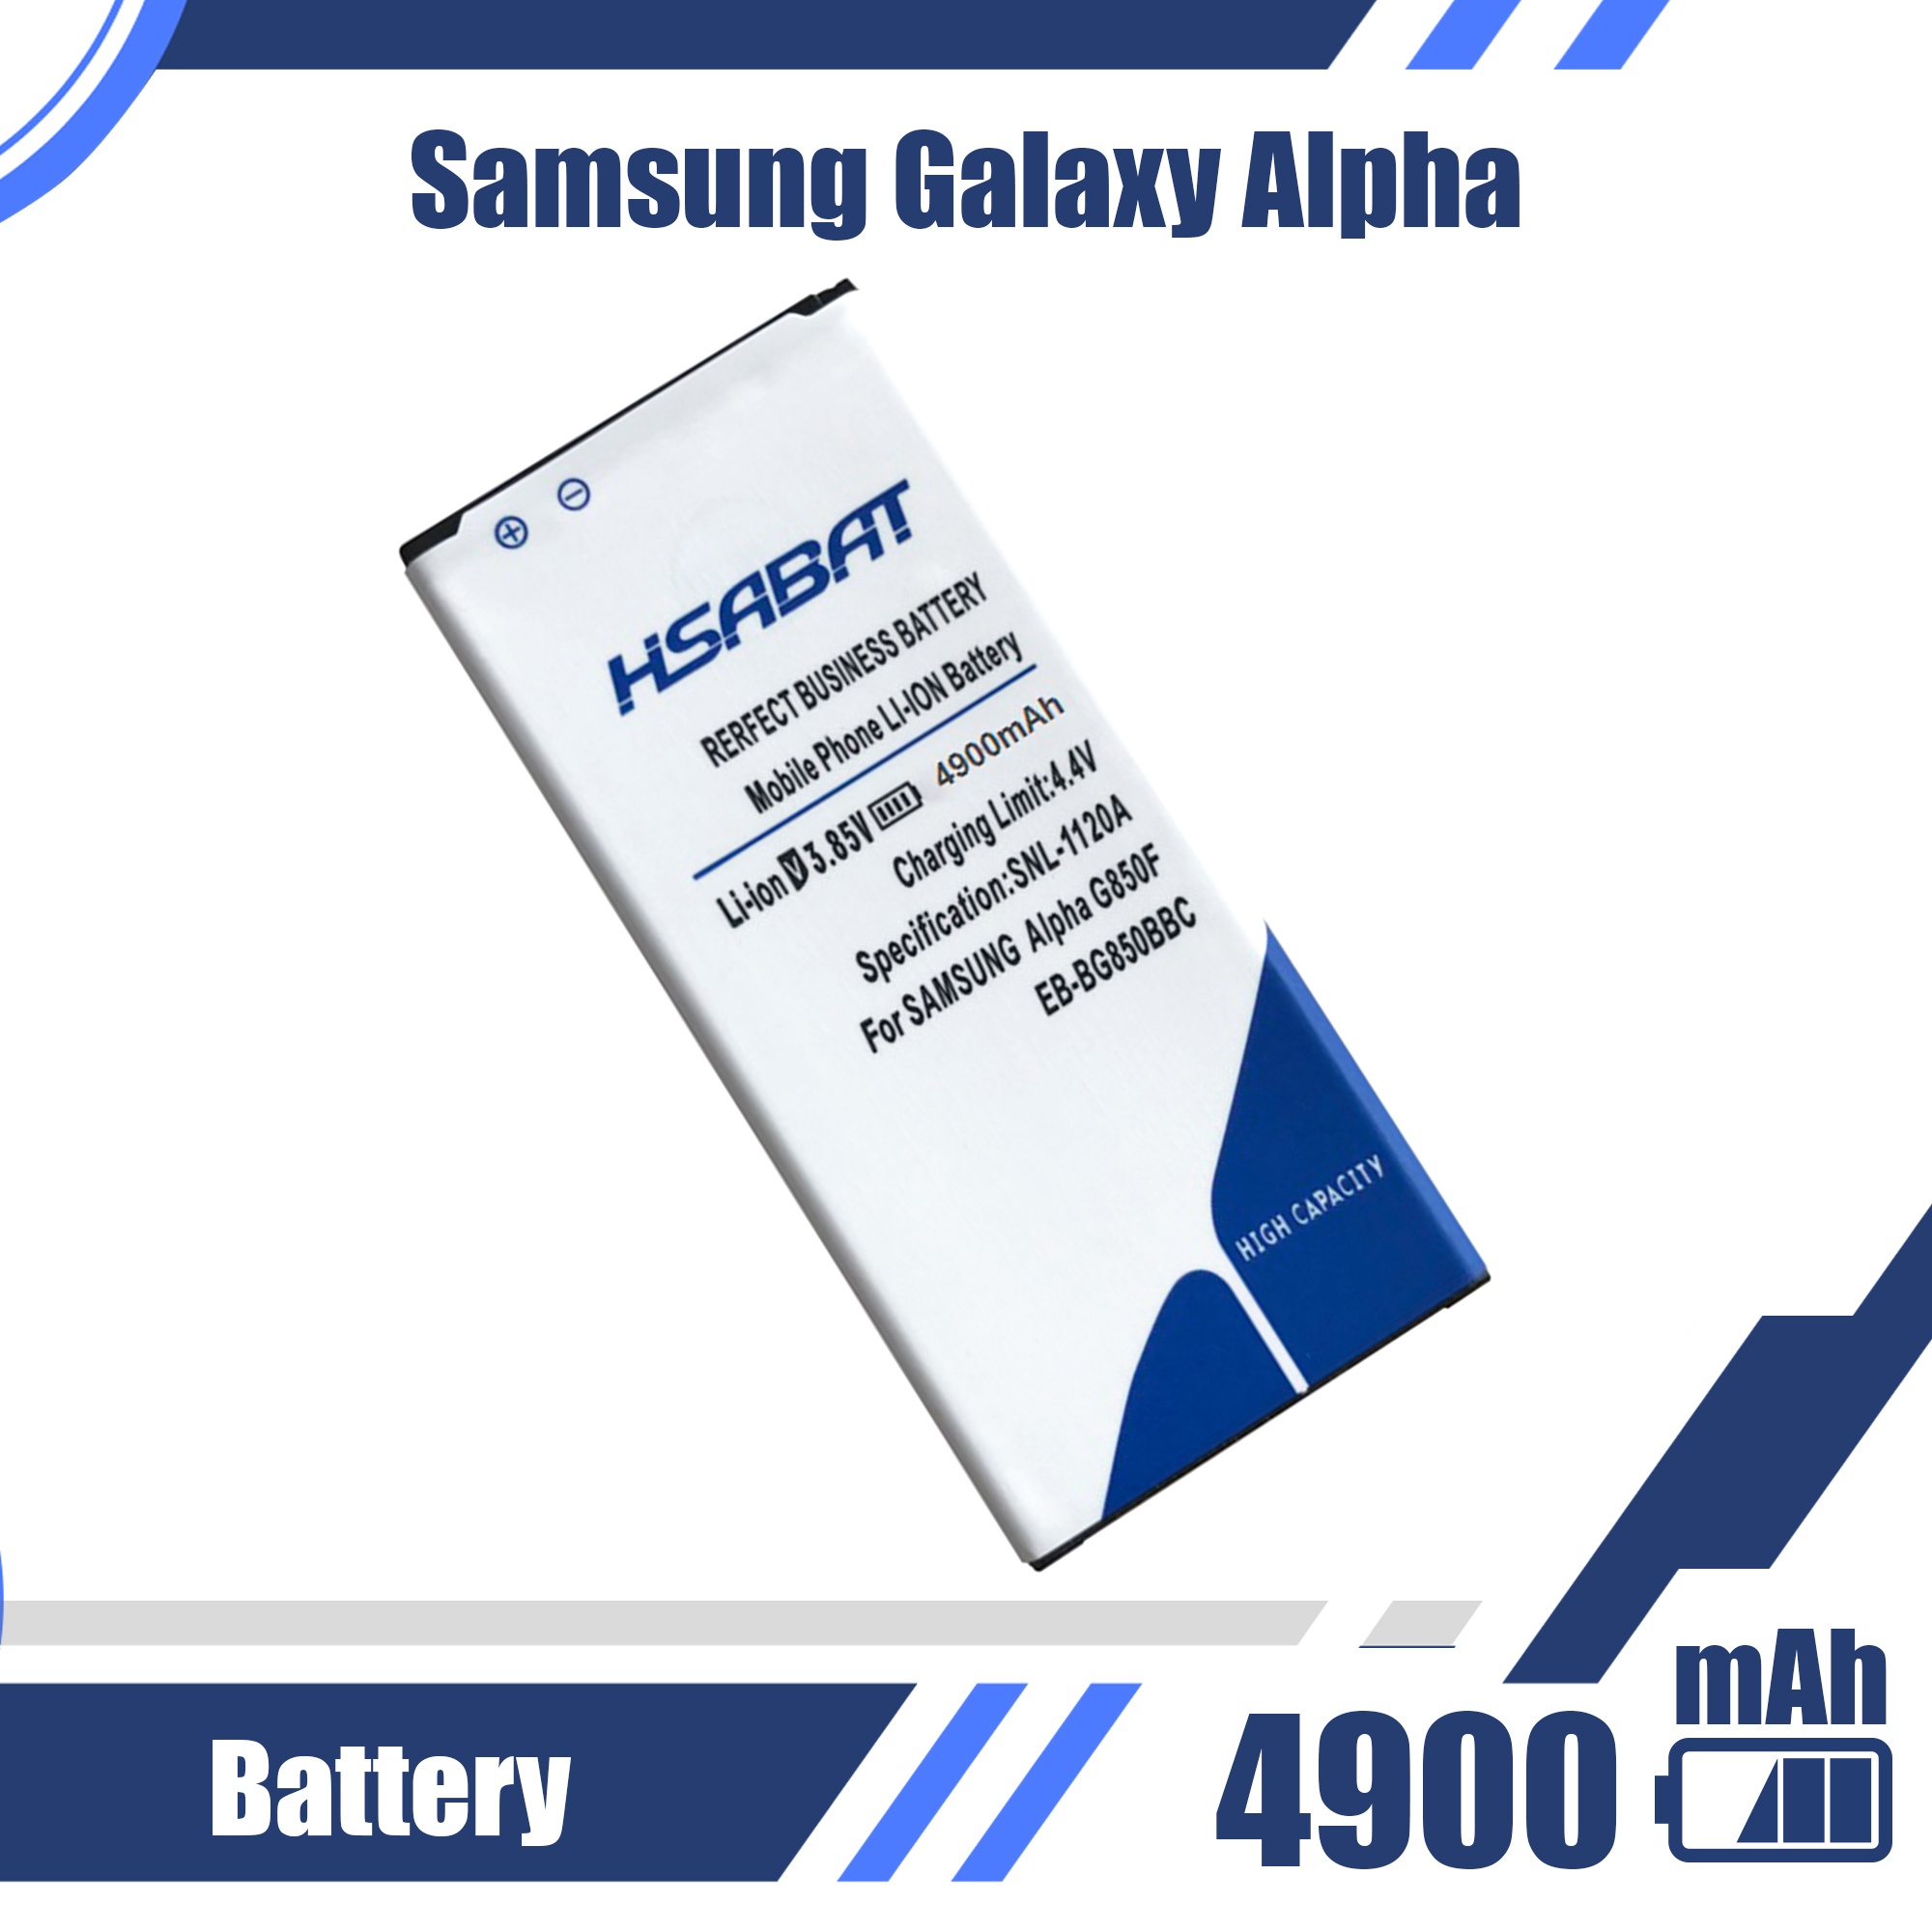 4900mAh EB-BG850BBC Battery for Samsung Galaxy Alpha G850F G8508S G8509V G850 G8508 G850T G850V G850M